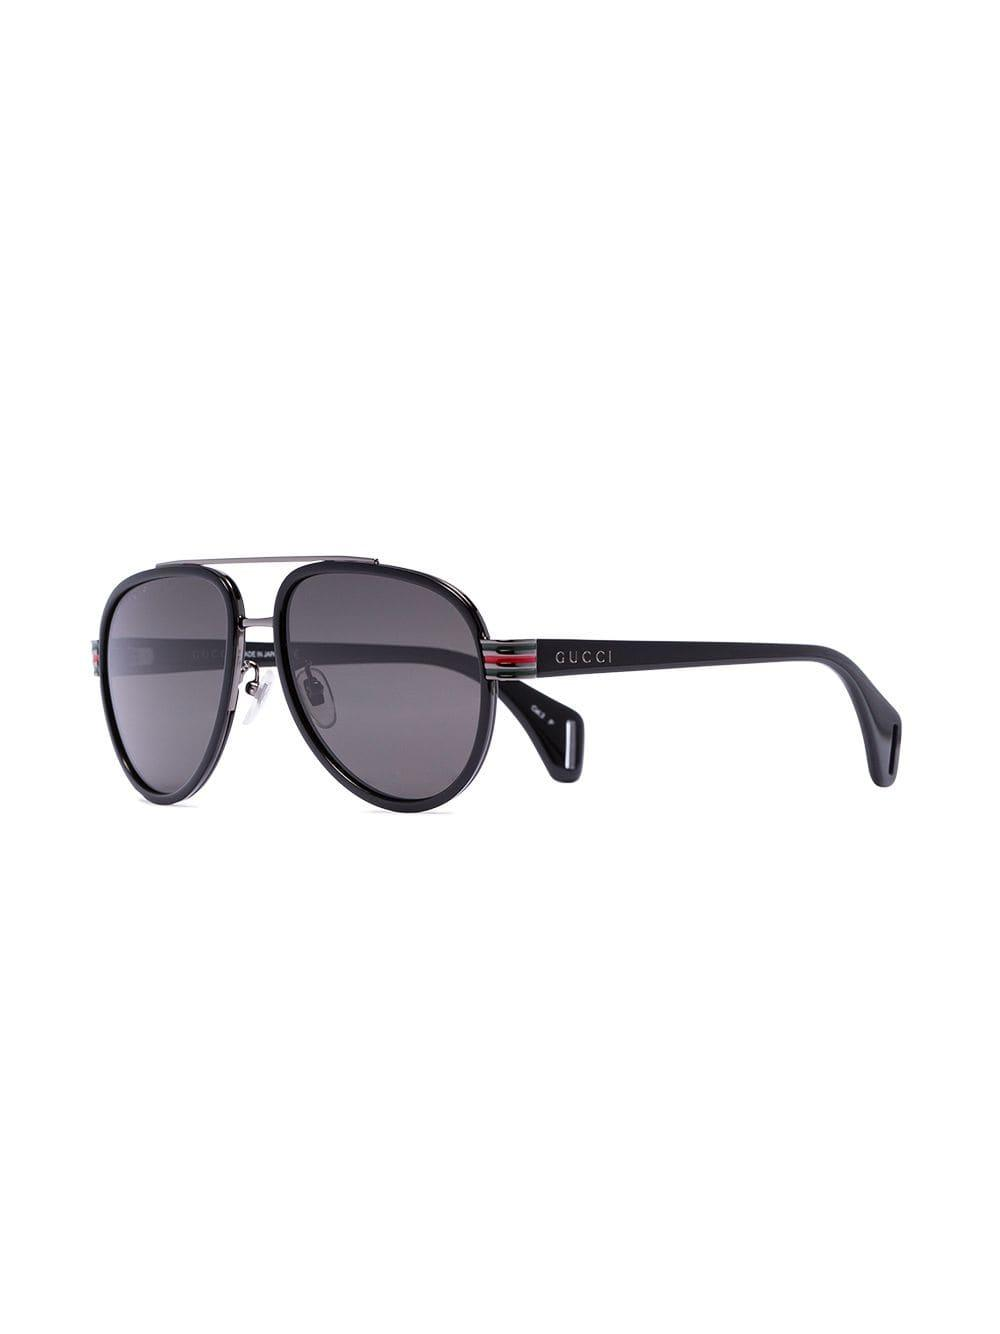 ad5e08d204 Gucci Black Tinted Lens Aviator Sunglasses in Black for Men - Lyst